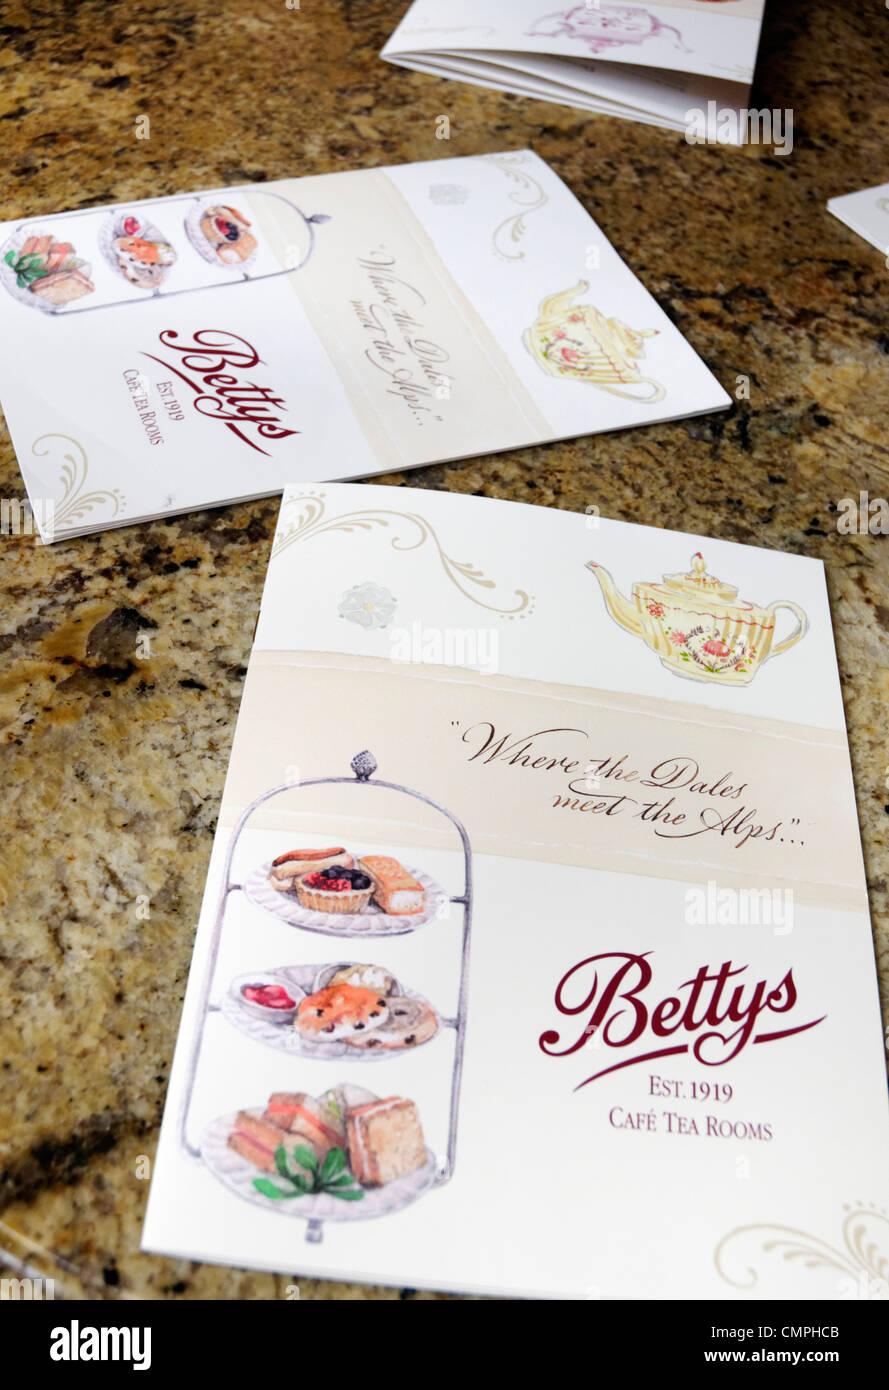 Menus on a table in Bettys tea Rooms, York, UK - Stock Image